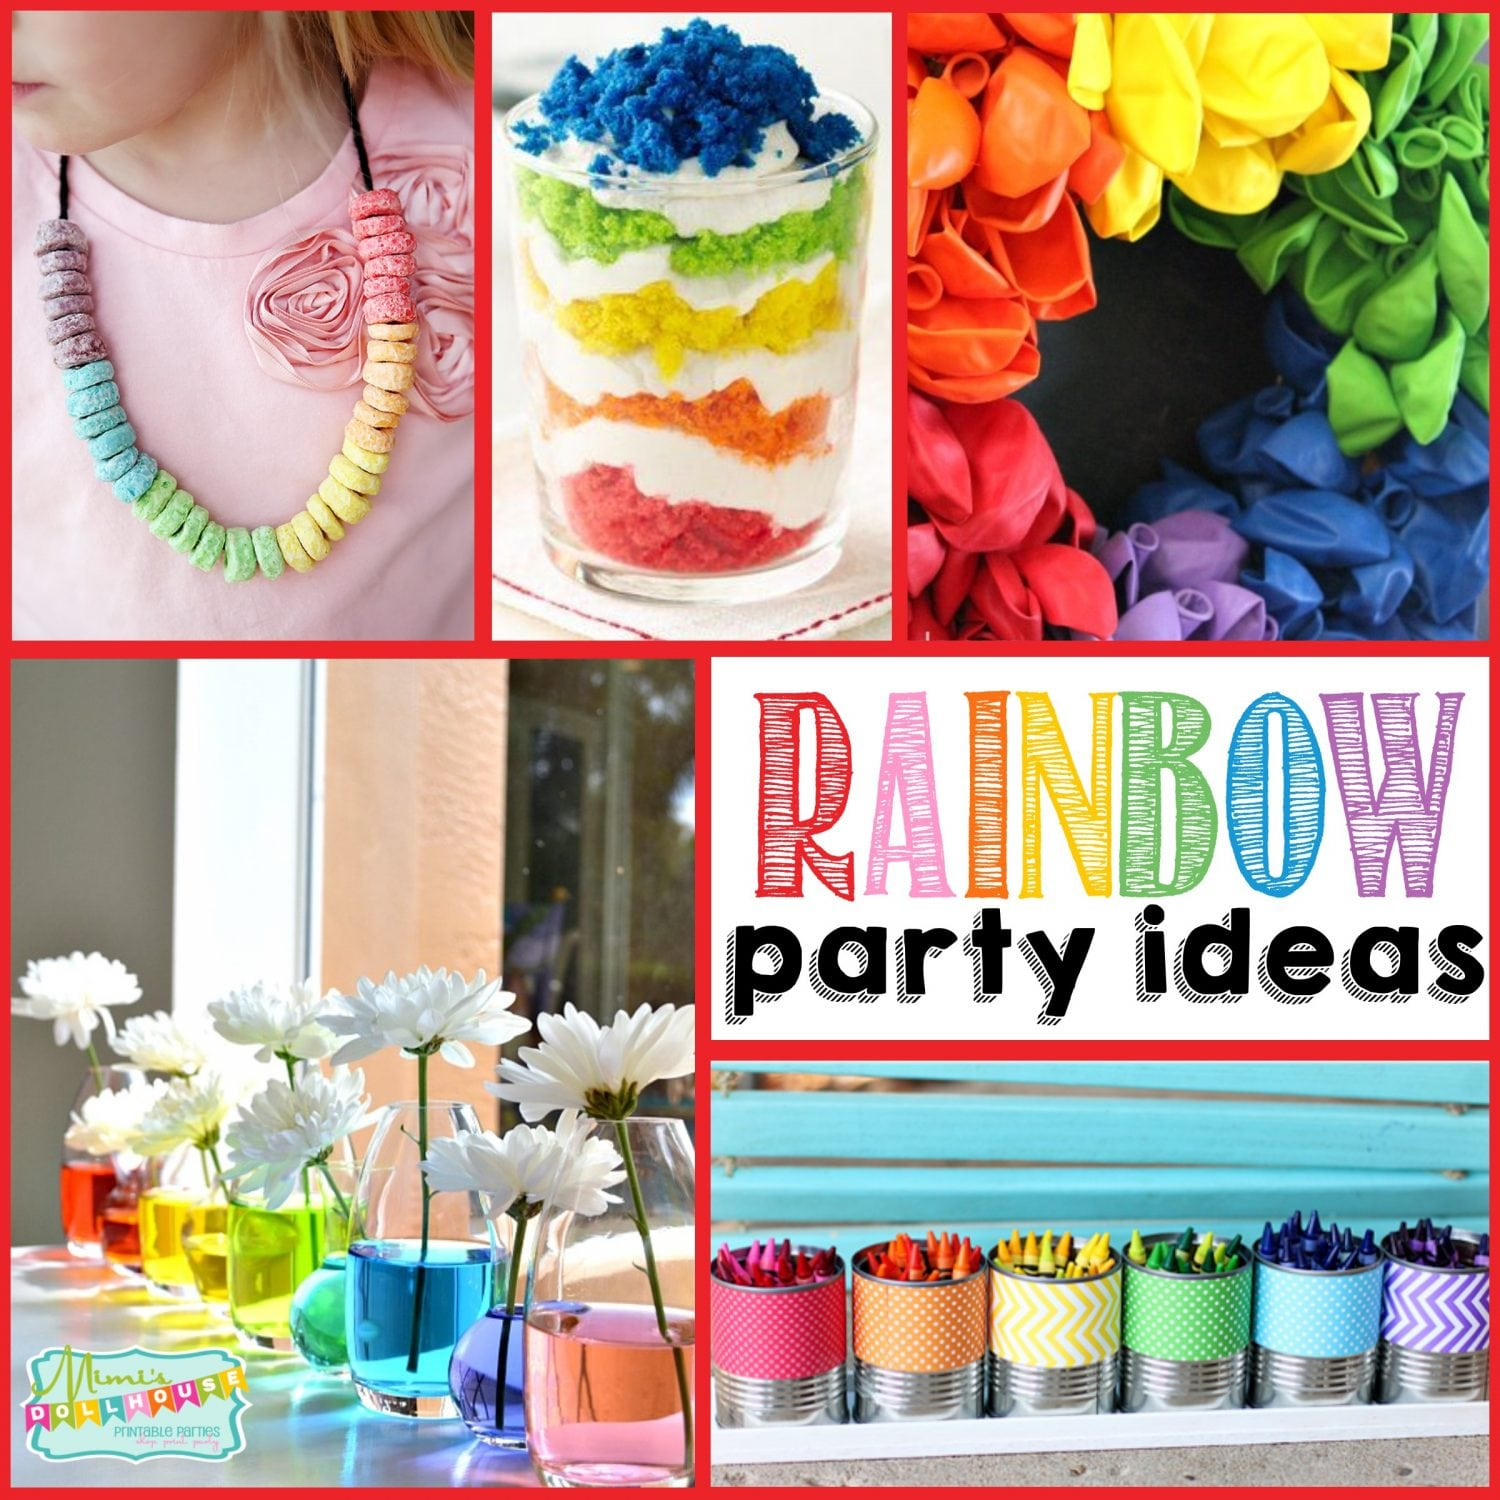 St. Patrick's Day: Rainbow Party Ideas